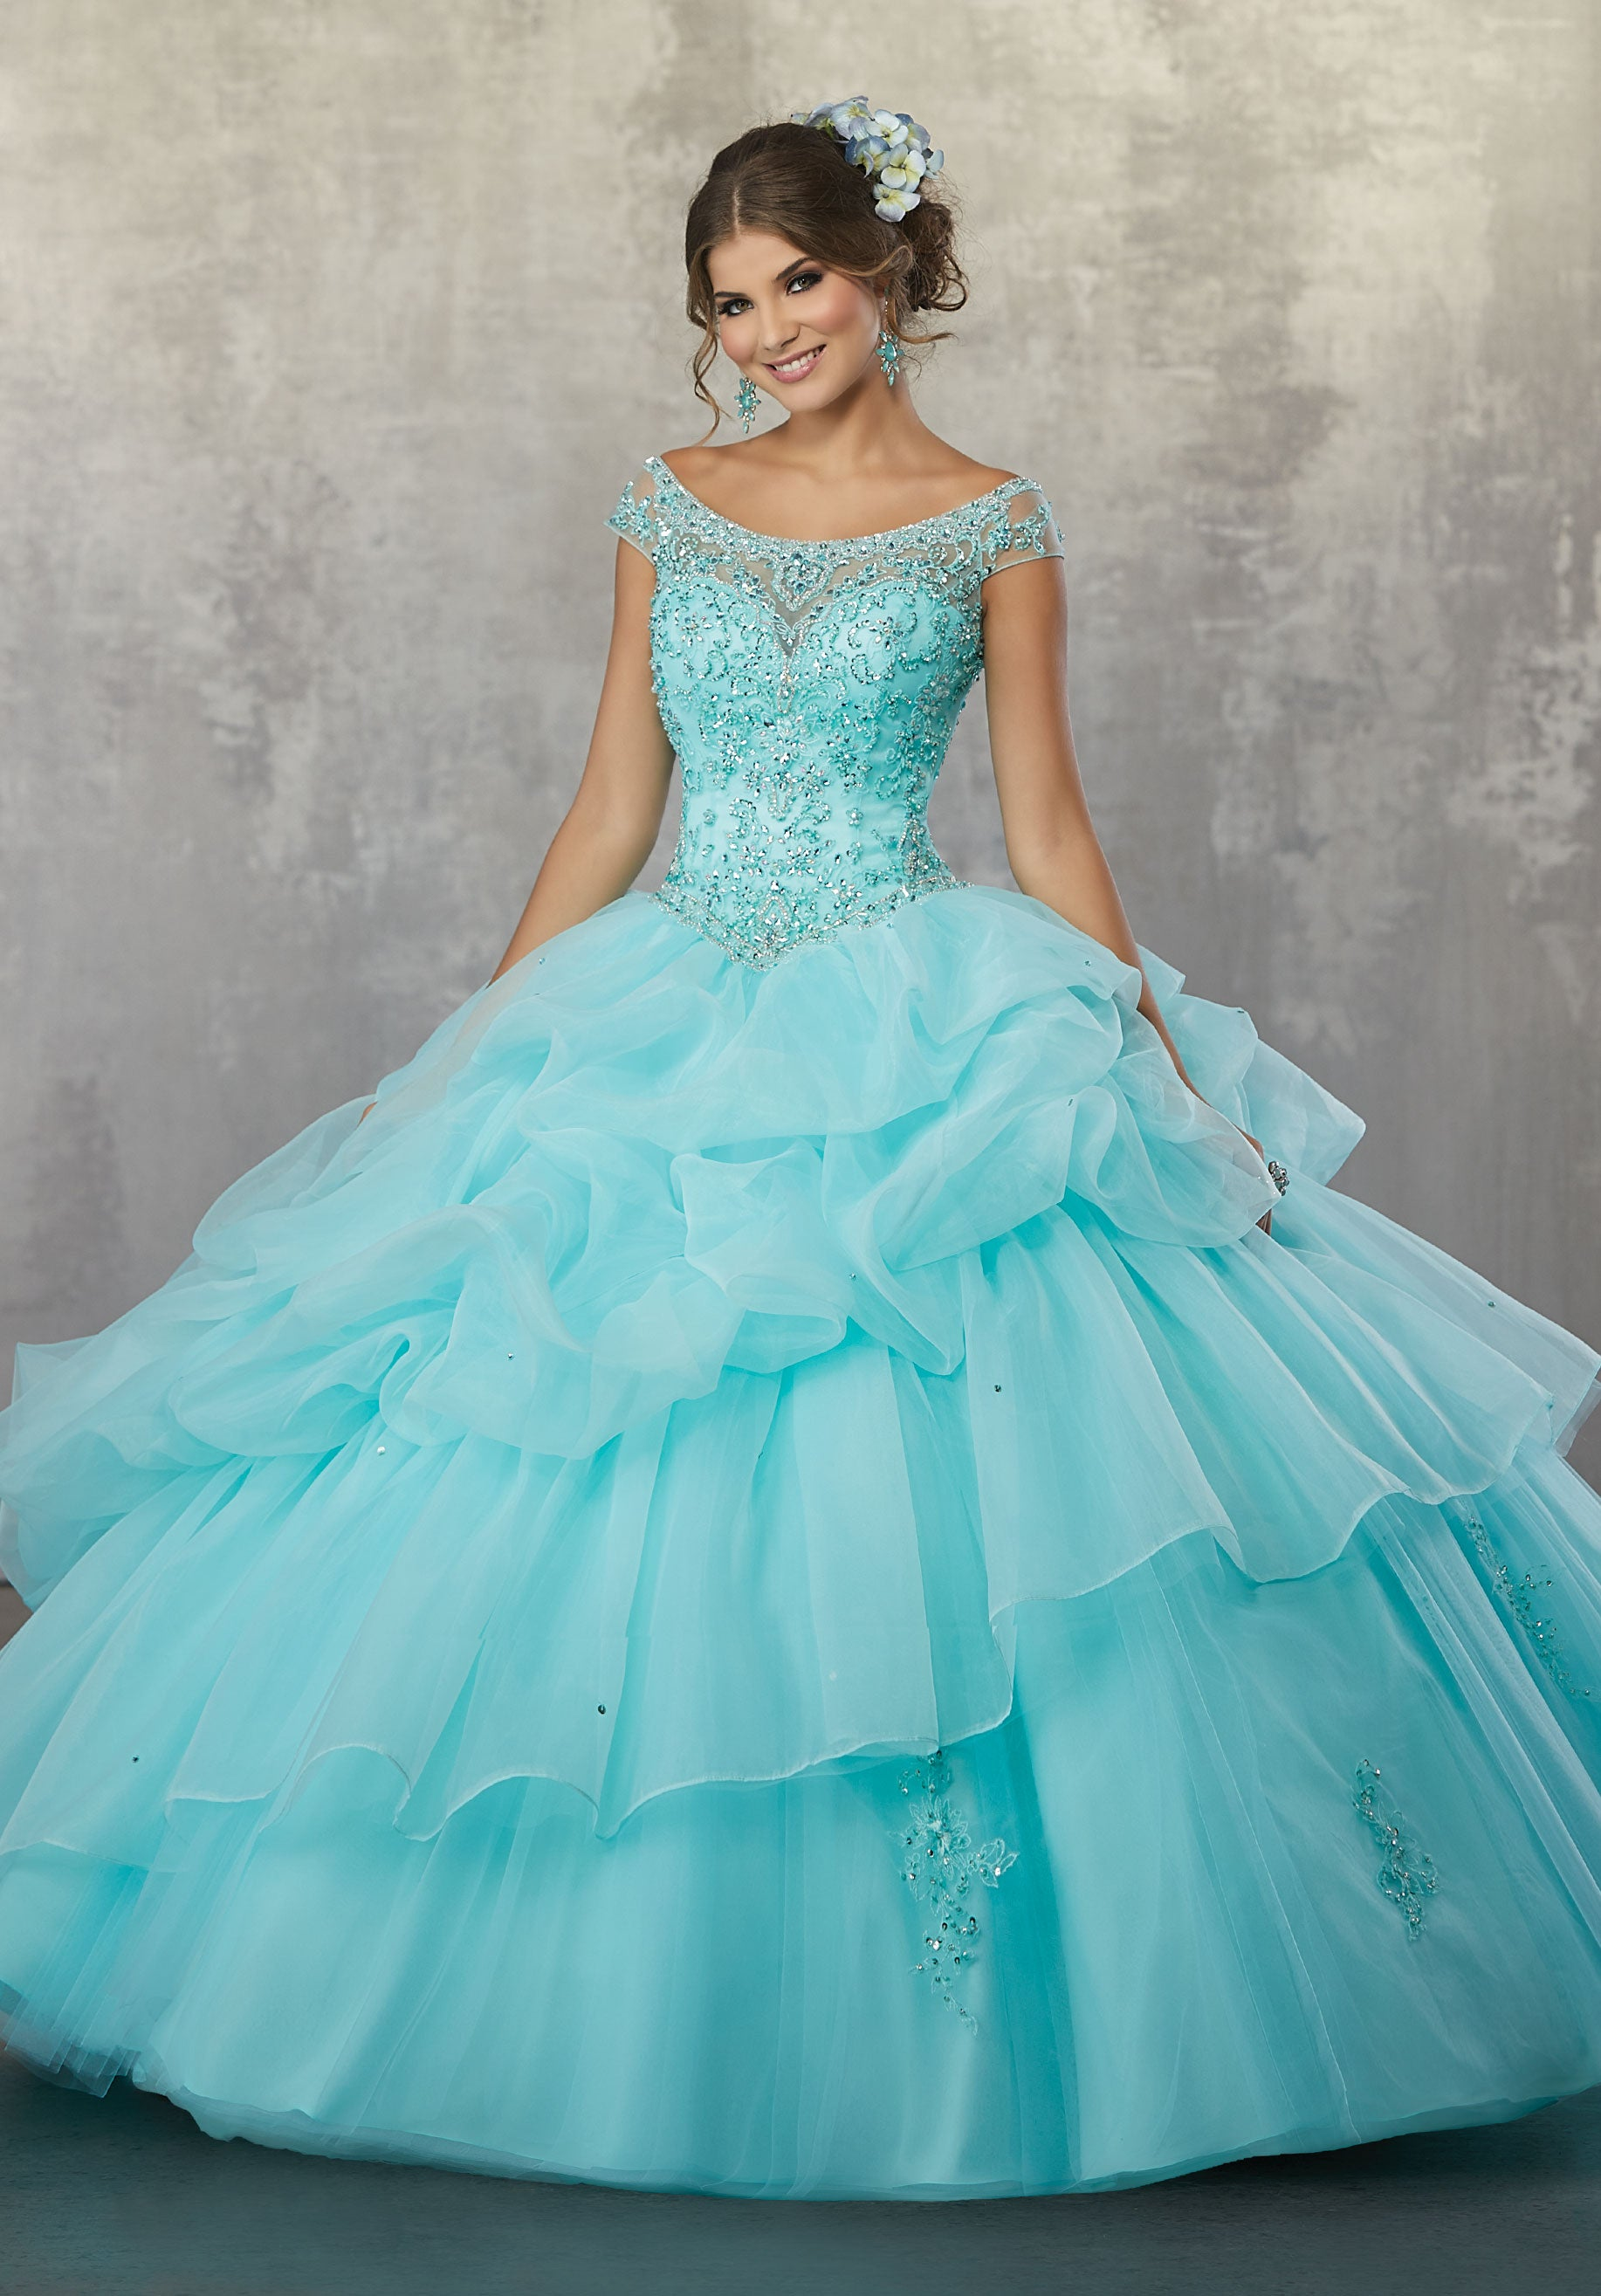 78056 Quinceanera Ballgown with Beaded Embroidery on a Ruched Organza and Tulle